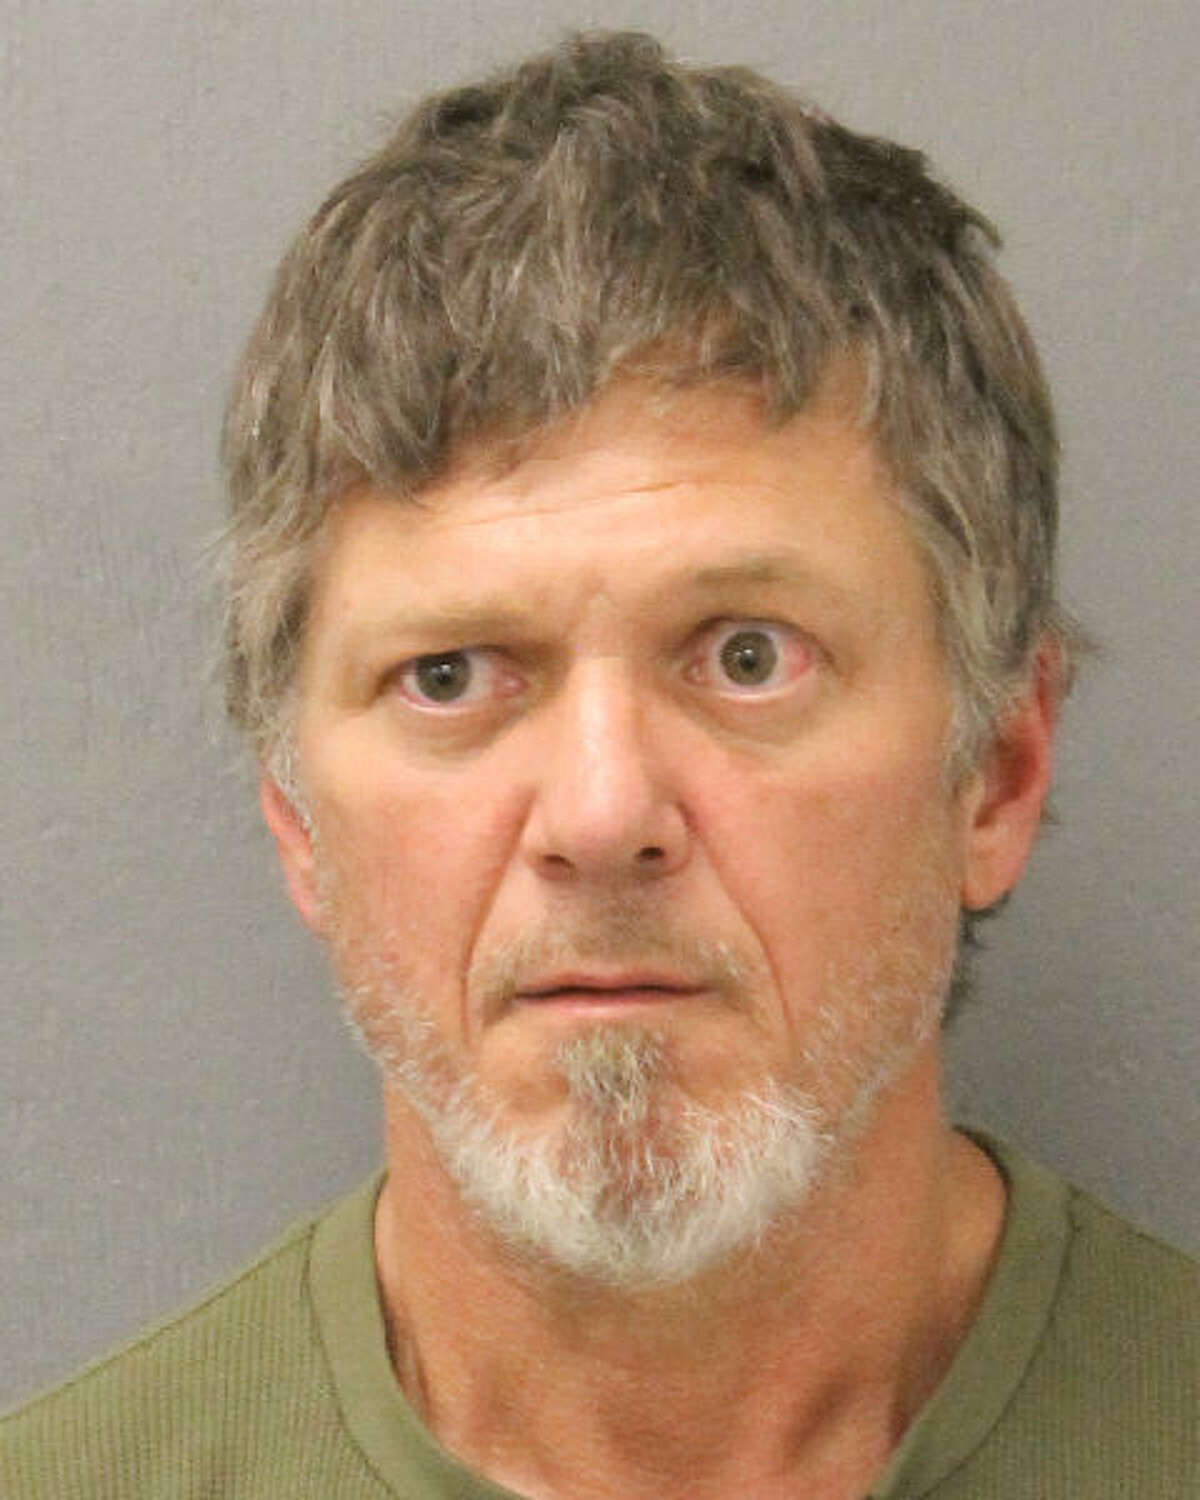 Ronnie Isbel, 51, has been charged with felony murder and failure to stop and render aid involving death in a Thursday, Jan. 10, 2019 crash in Cloverleaf.